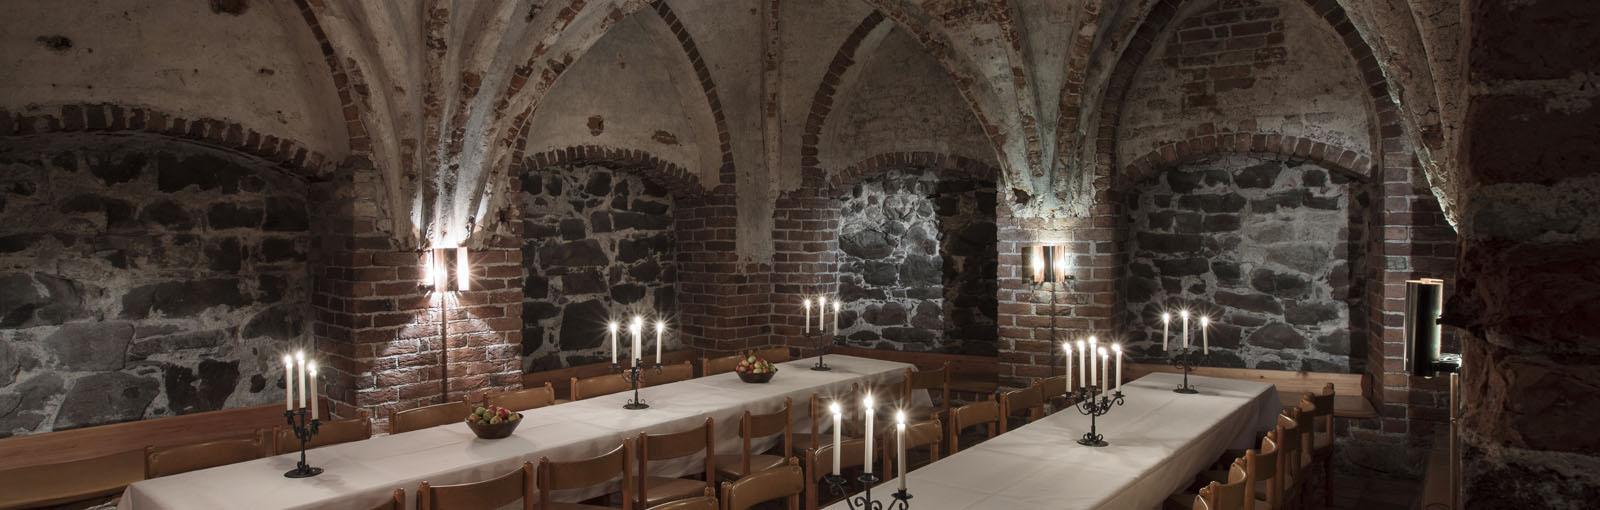 Meeting and event venues across Finland